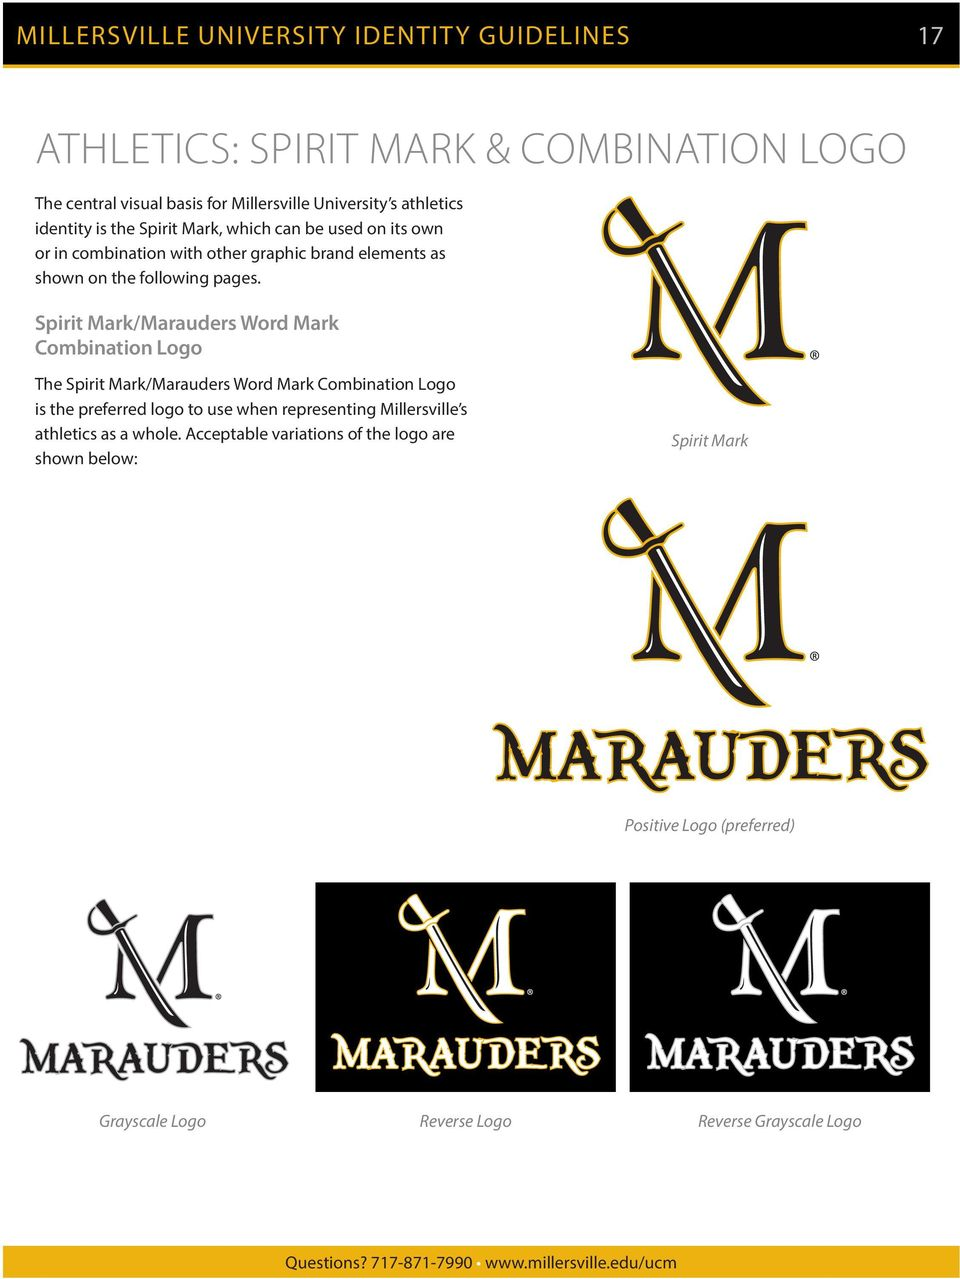 Spirit Mark/Marauders Word Mark Combination Logo The Spirit Mark/Marauders Word Mark Combination Logo is the preferred logo to use when representing